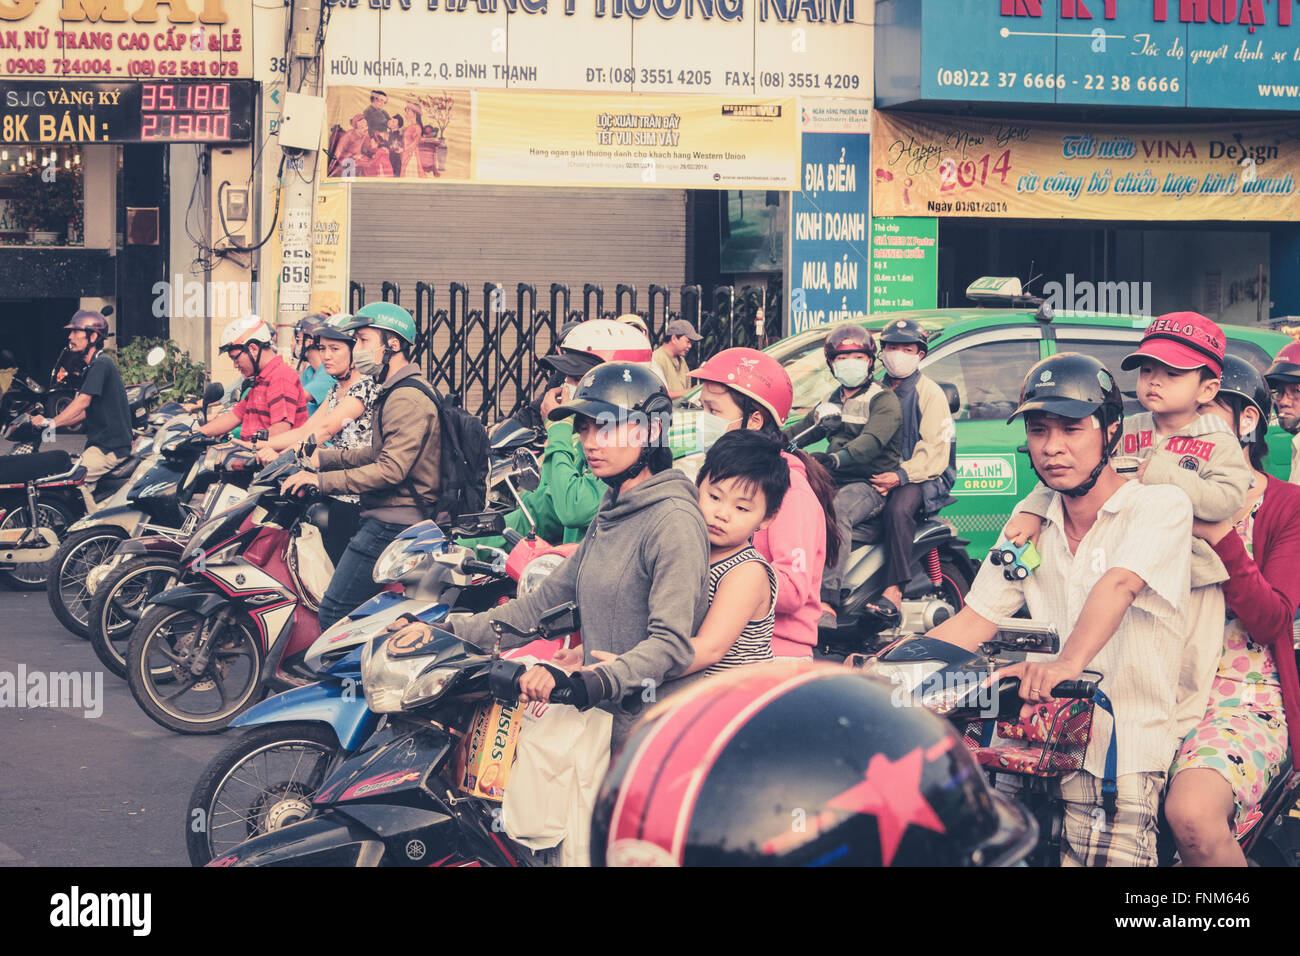 scooter driver waiting at traffic light , motorbike traffic , streets of saigon, vietnam - Stock Image